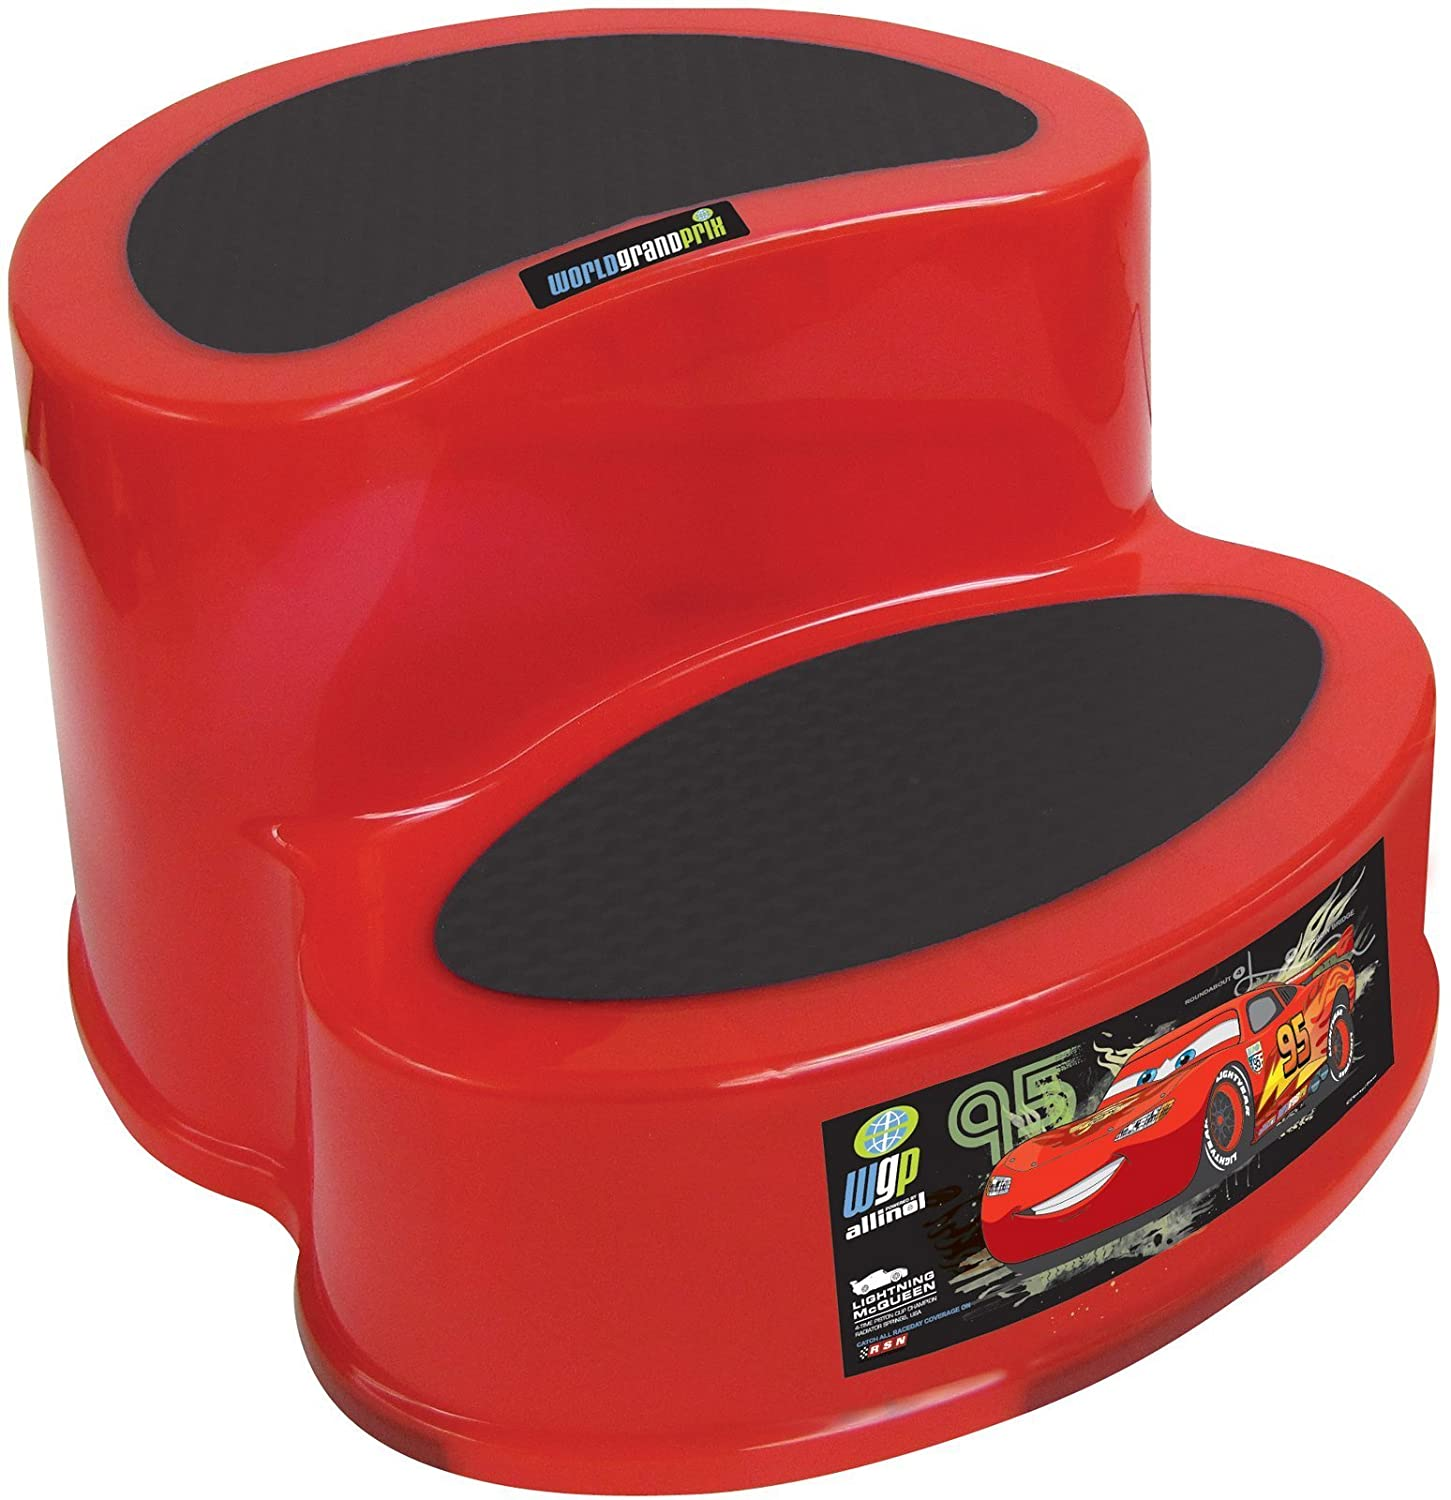 Disney Cars 2-Tier Step Stool, Red Ginsey 20702